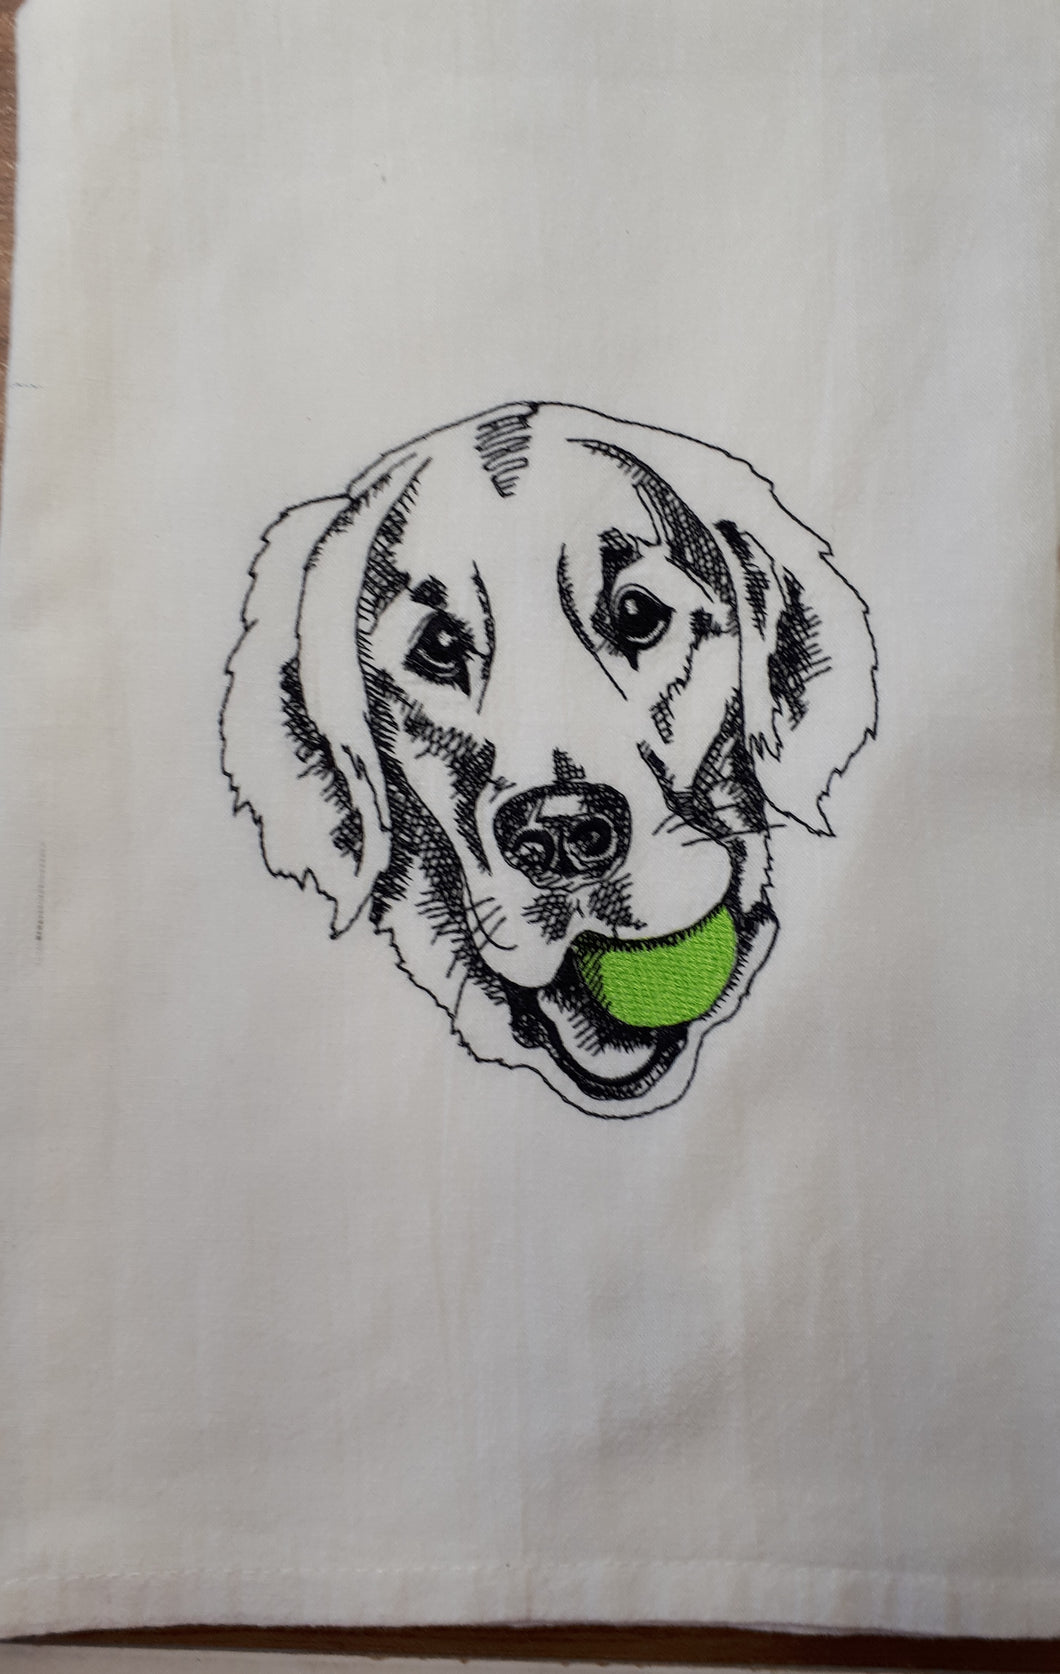 This white flour sack towel has a sketch of a golden retriever stitched in black thread with a green tennis ball in his mouth